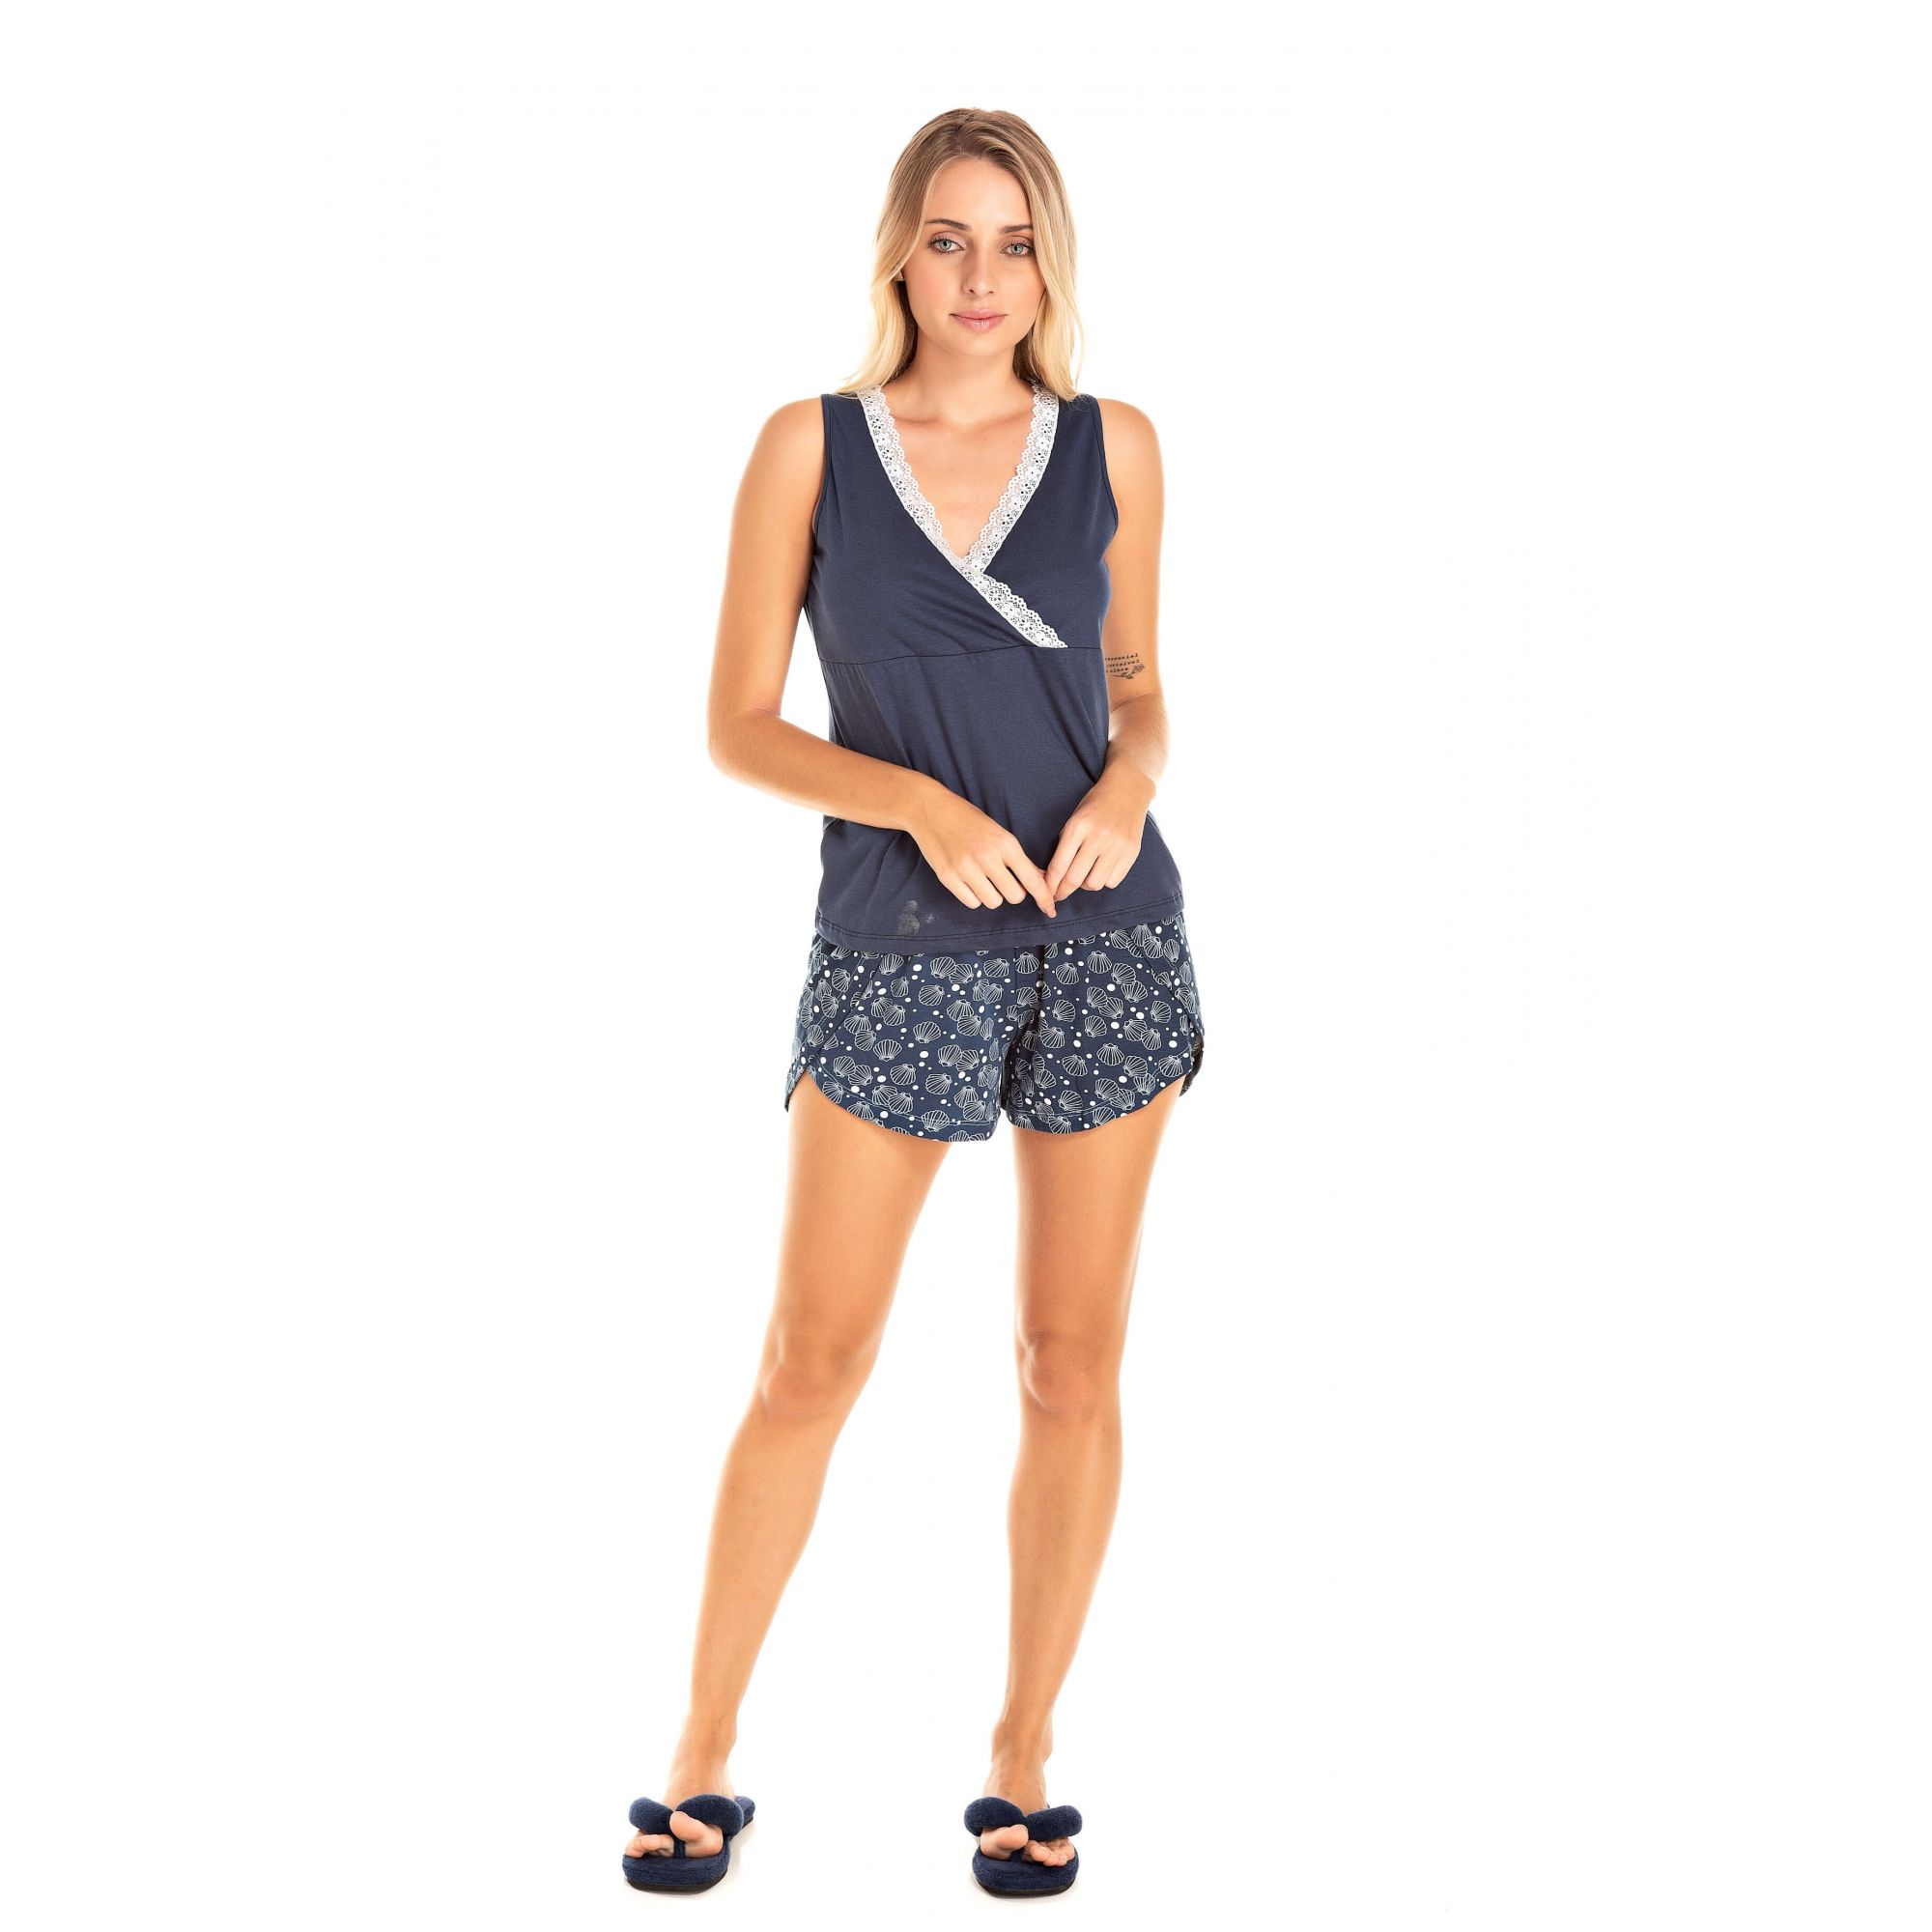 110/B - Short Doll Adulto Feminino Glamour